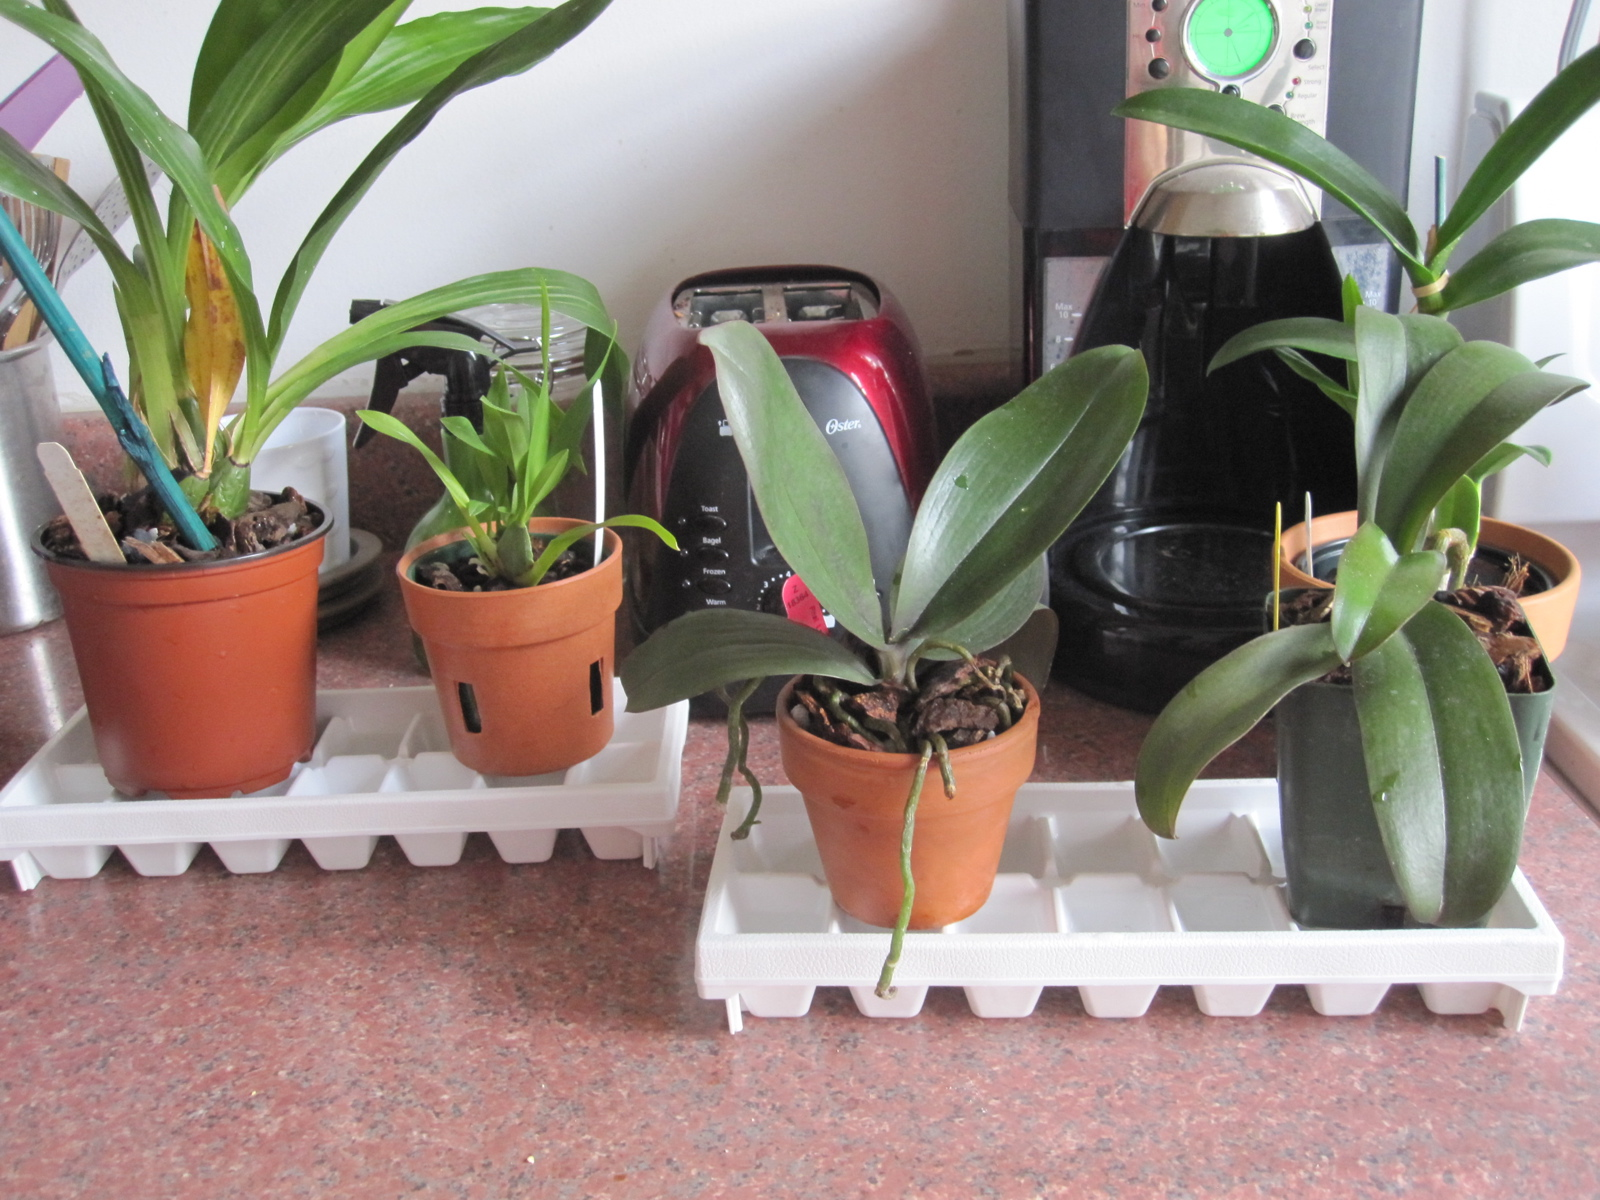 How to Make a Humidity Tray Brooklyn Orchids #994C32